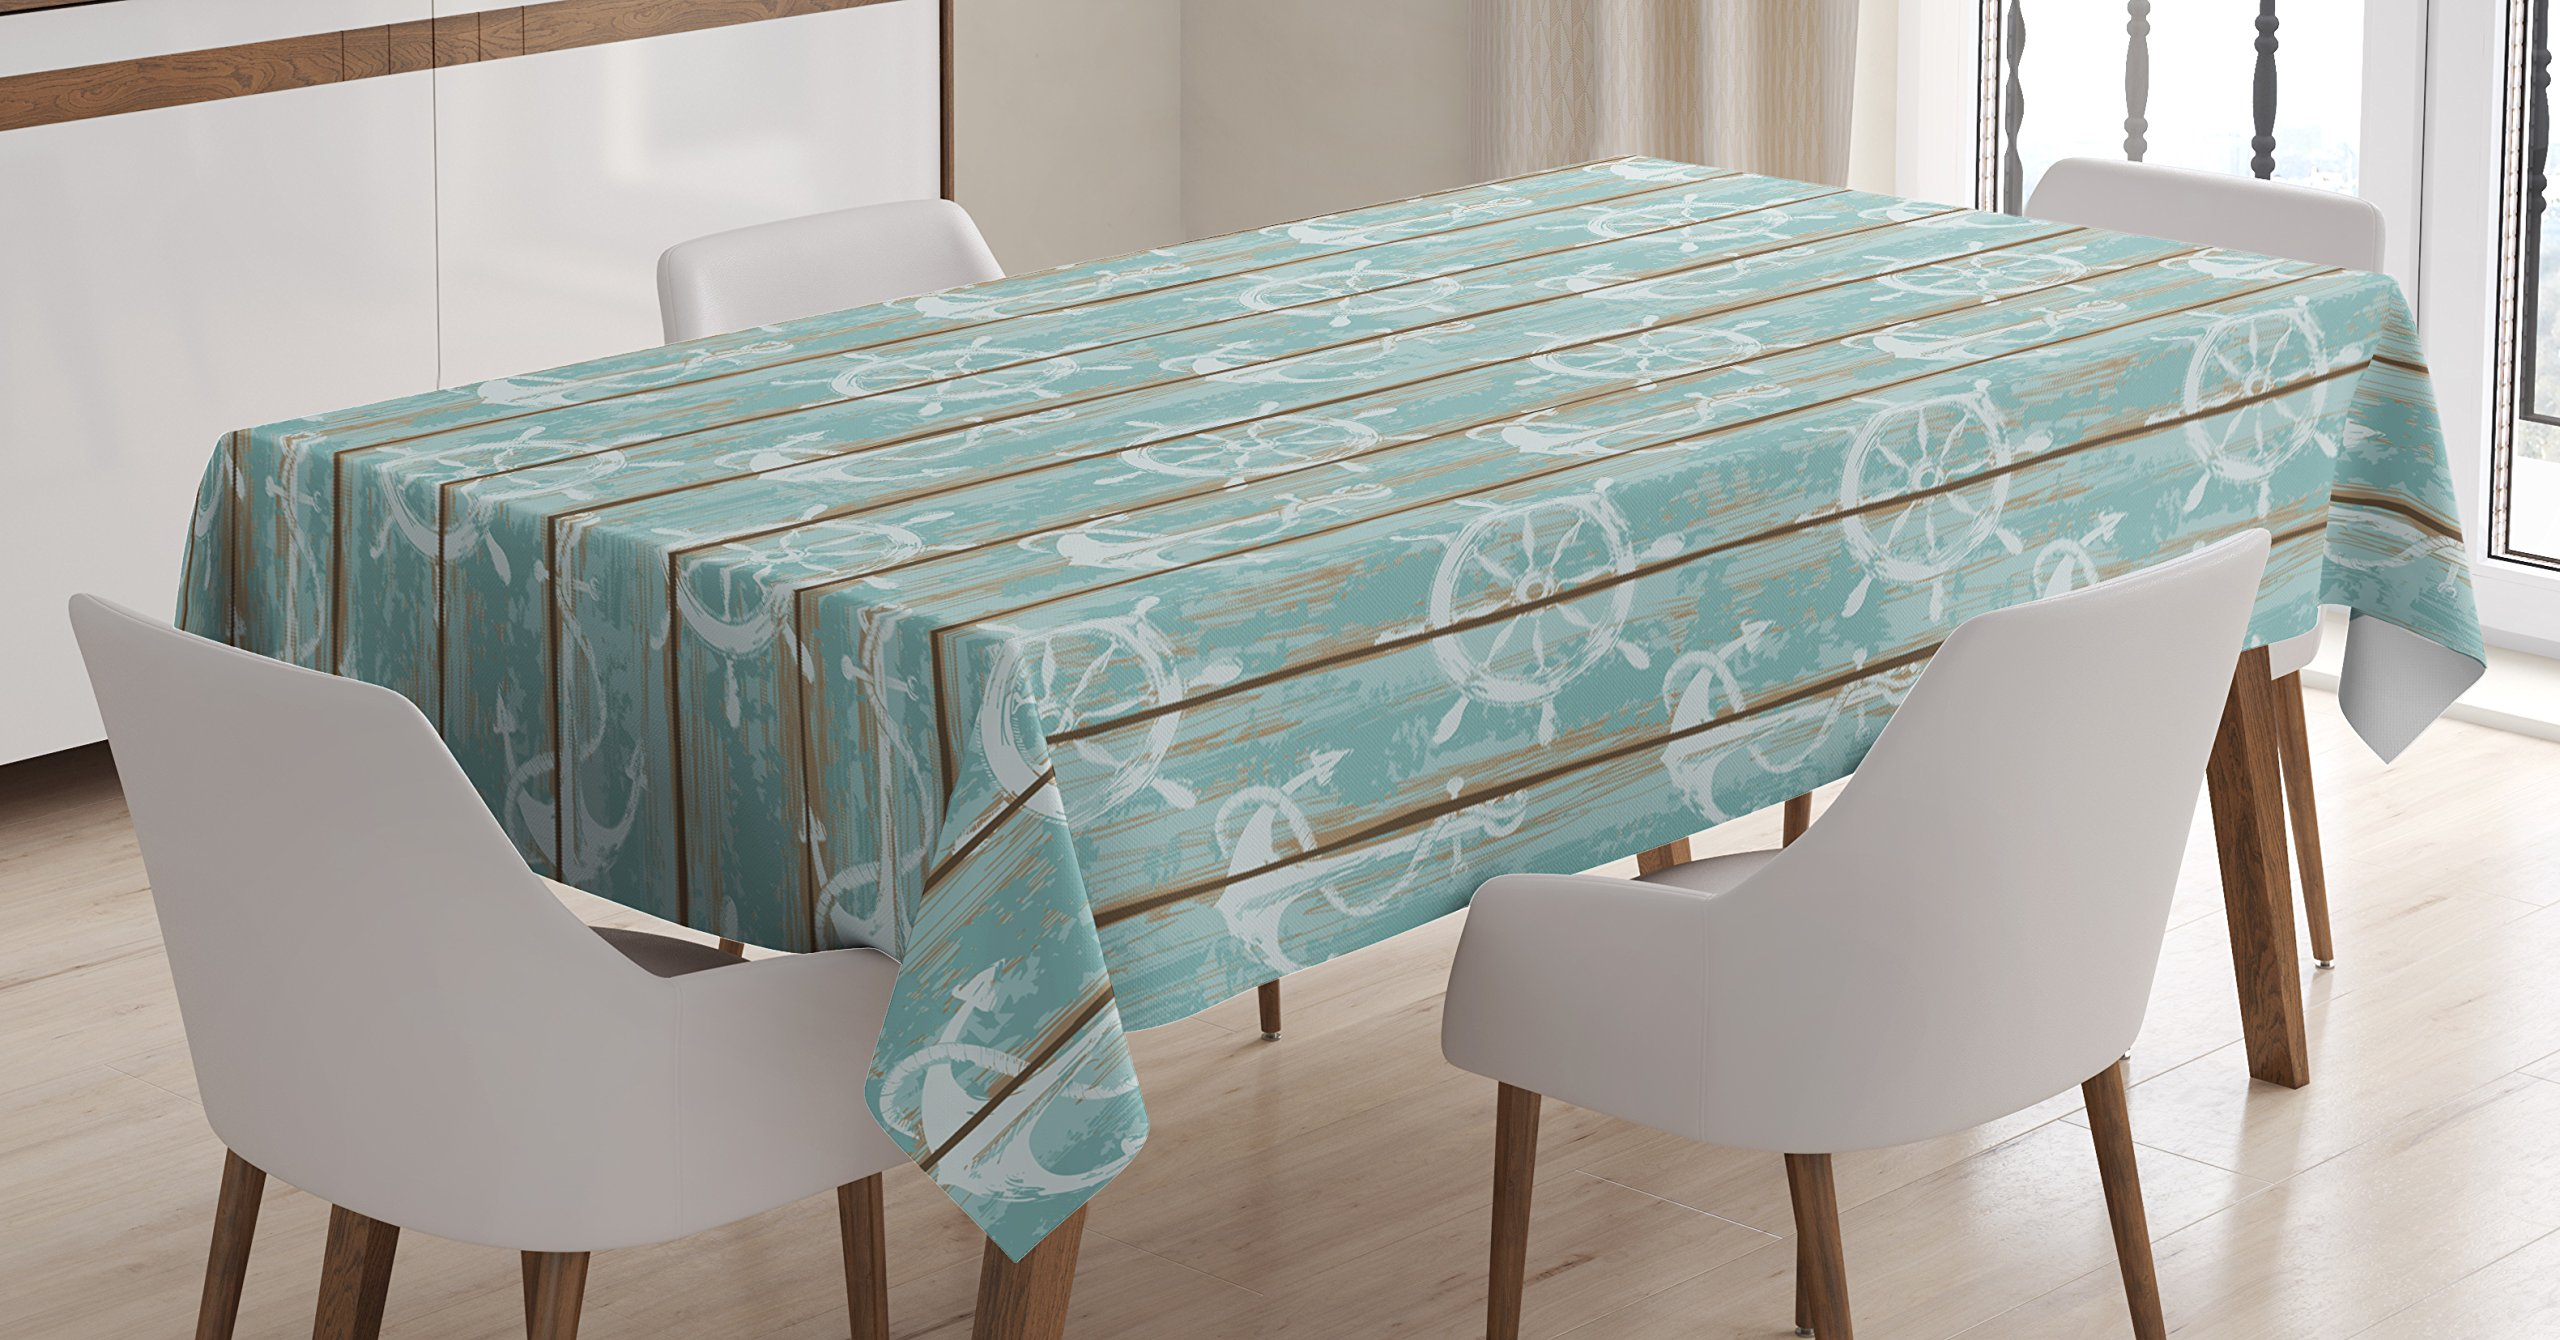 Ambesonne Nautical Tablecloth, Marine Elements Drawn on Old Wood Surface Helm Anchor Ornamental Print, Dining Room Kitchen Rectangular Table Cover, 60 W X 90 L inches, Turquoise Cocoa White